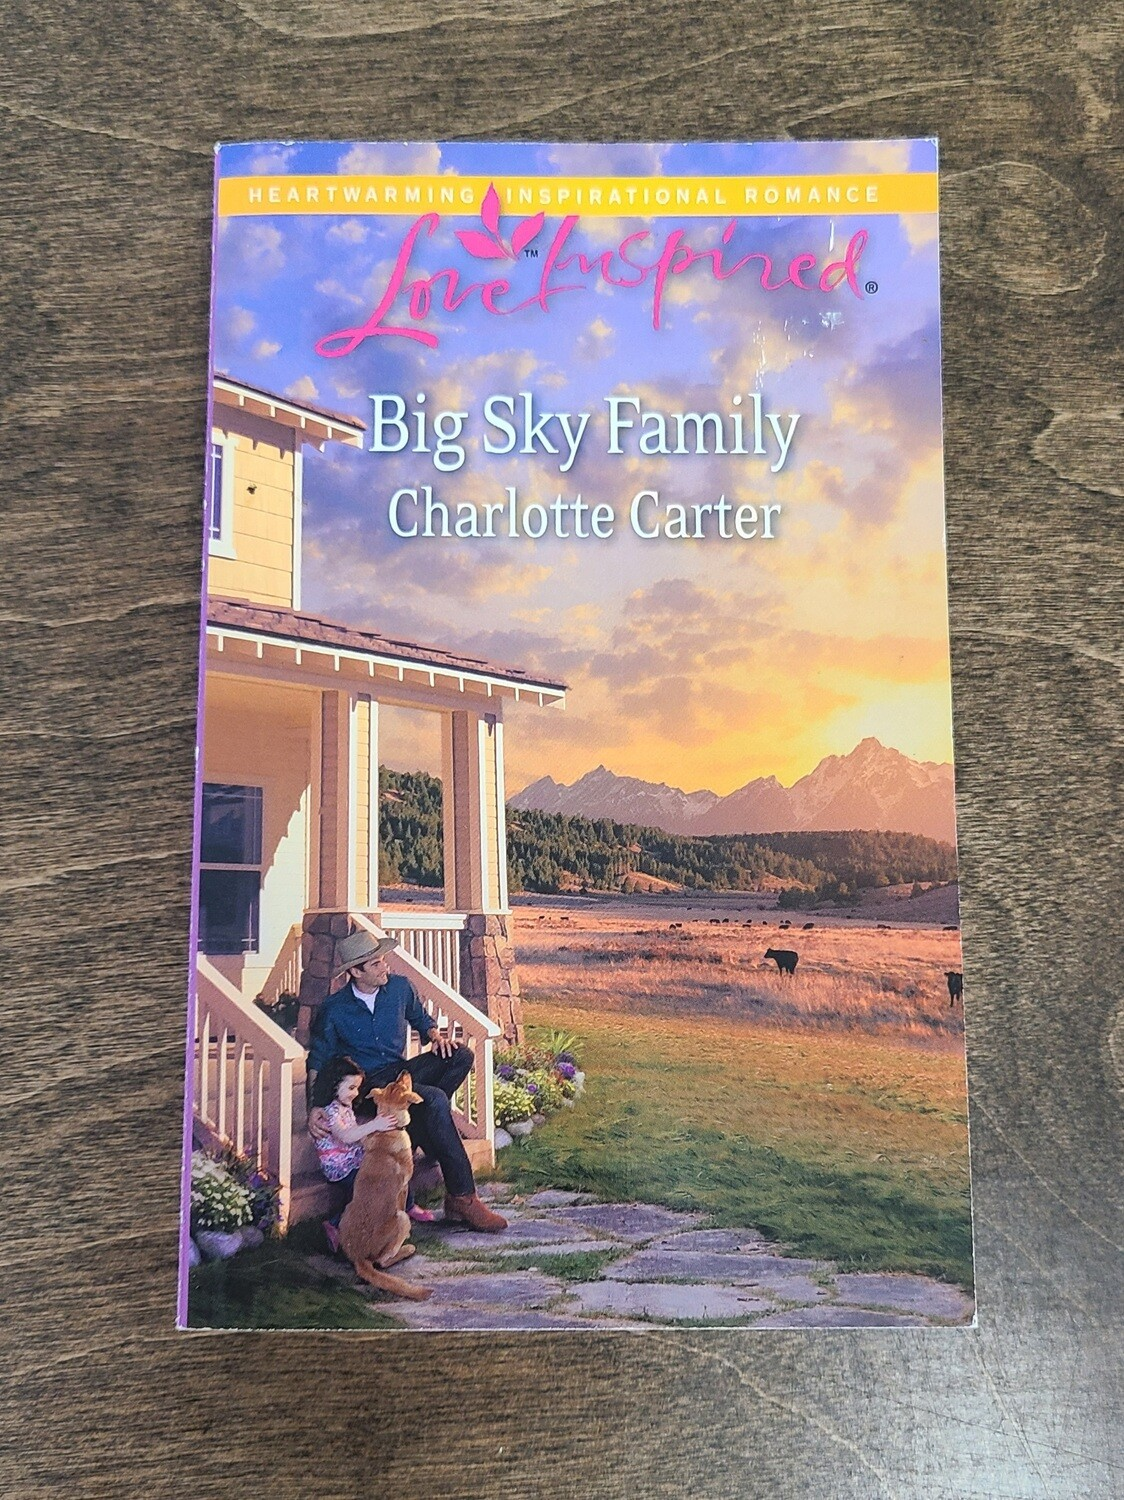 Big Sky Family by Charlotte Carter